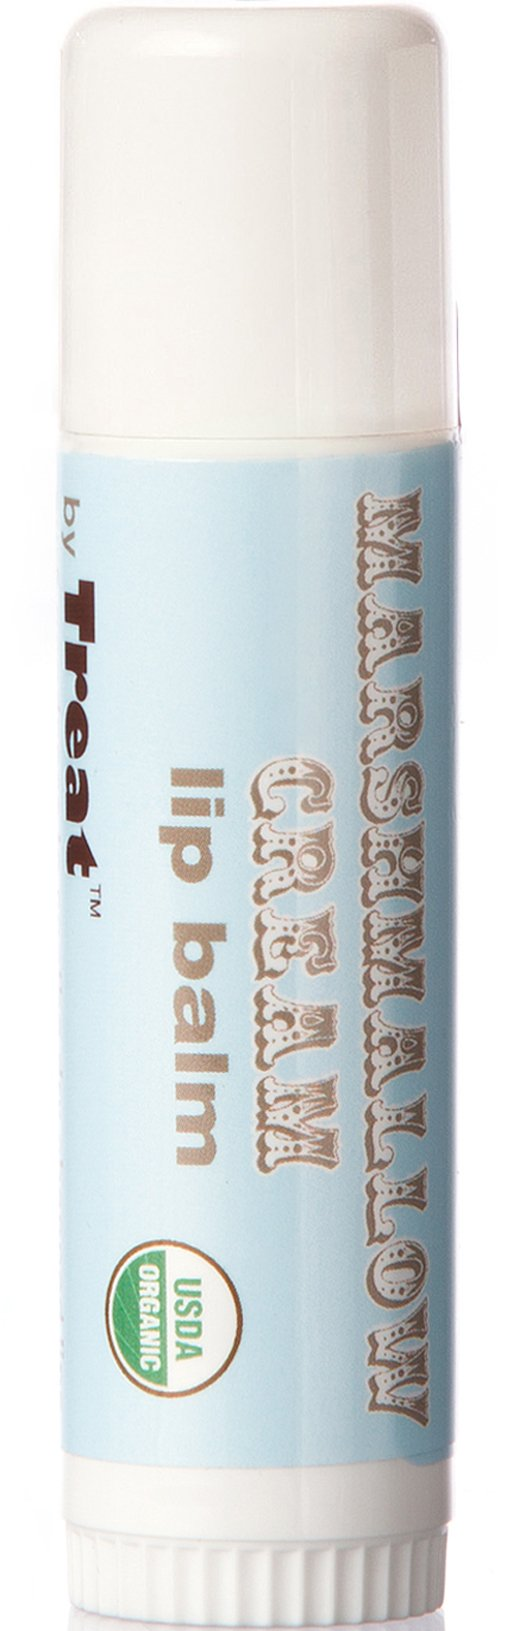 TREAT Jumbo Lip Balm - Marshmallow Cream, Organic & Cruelty Free (.50 OZ)